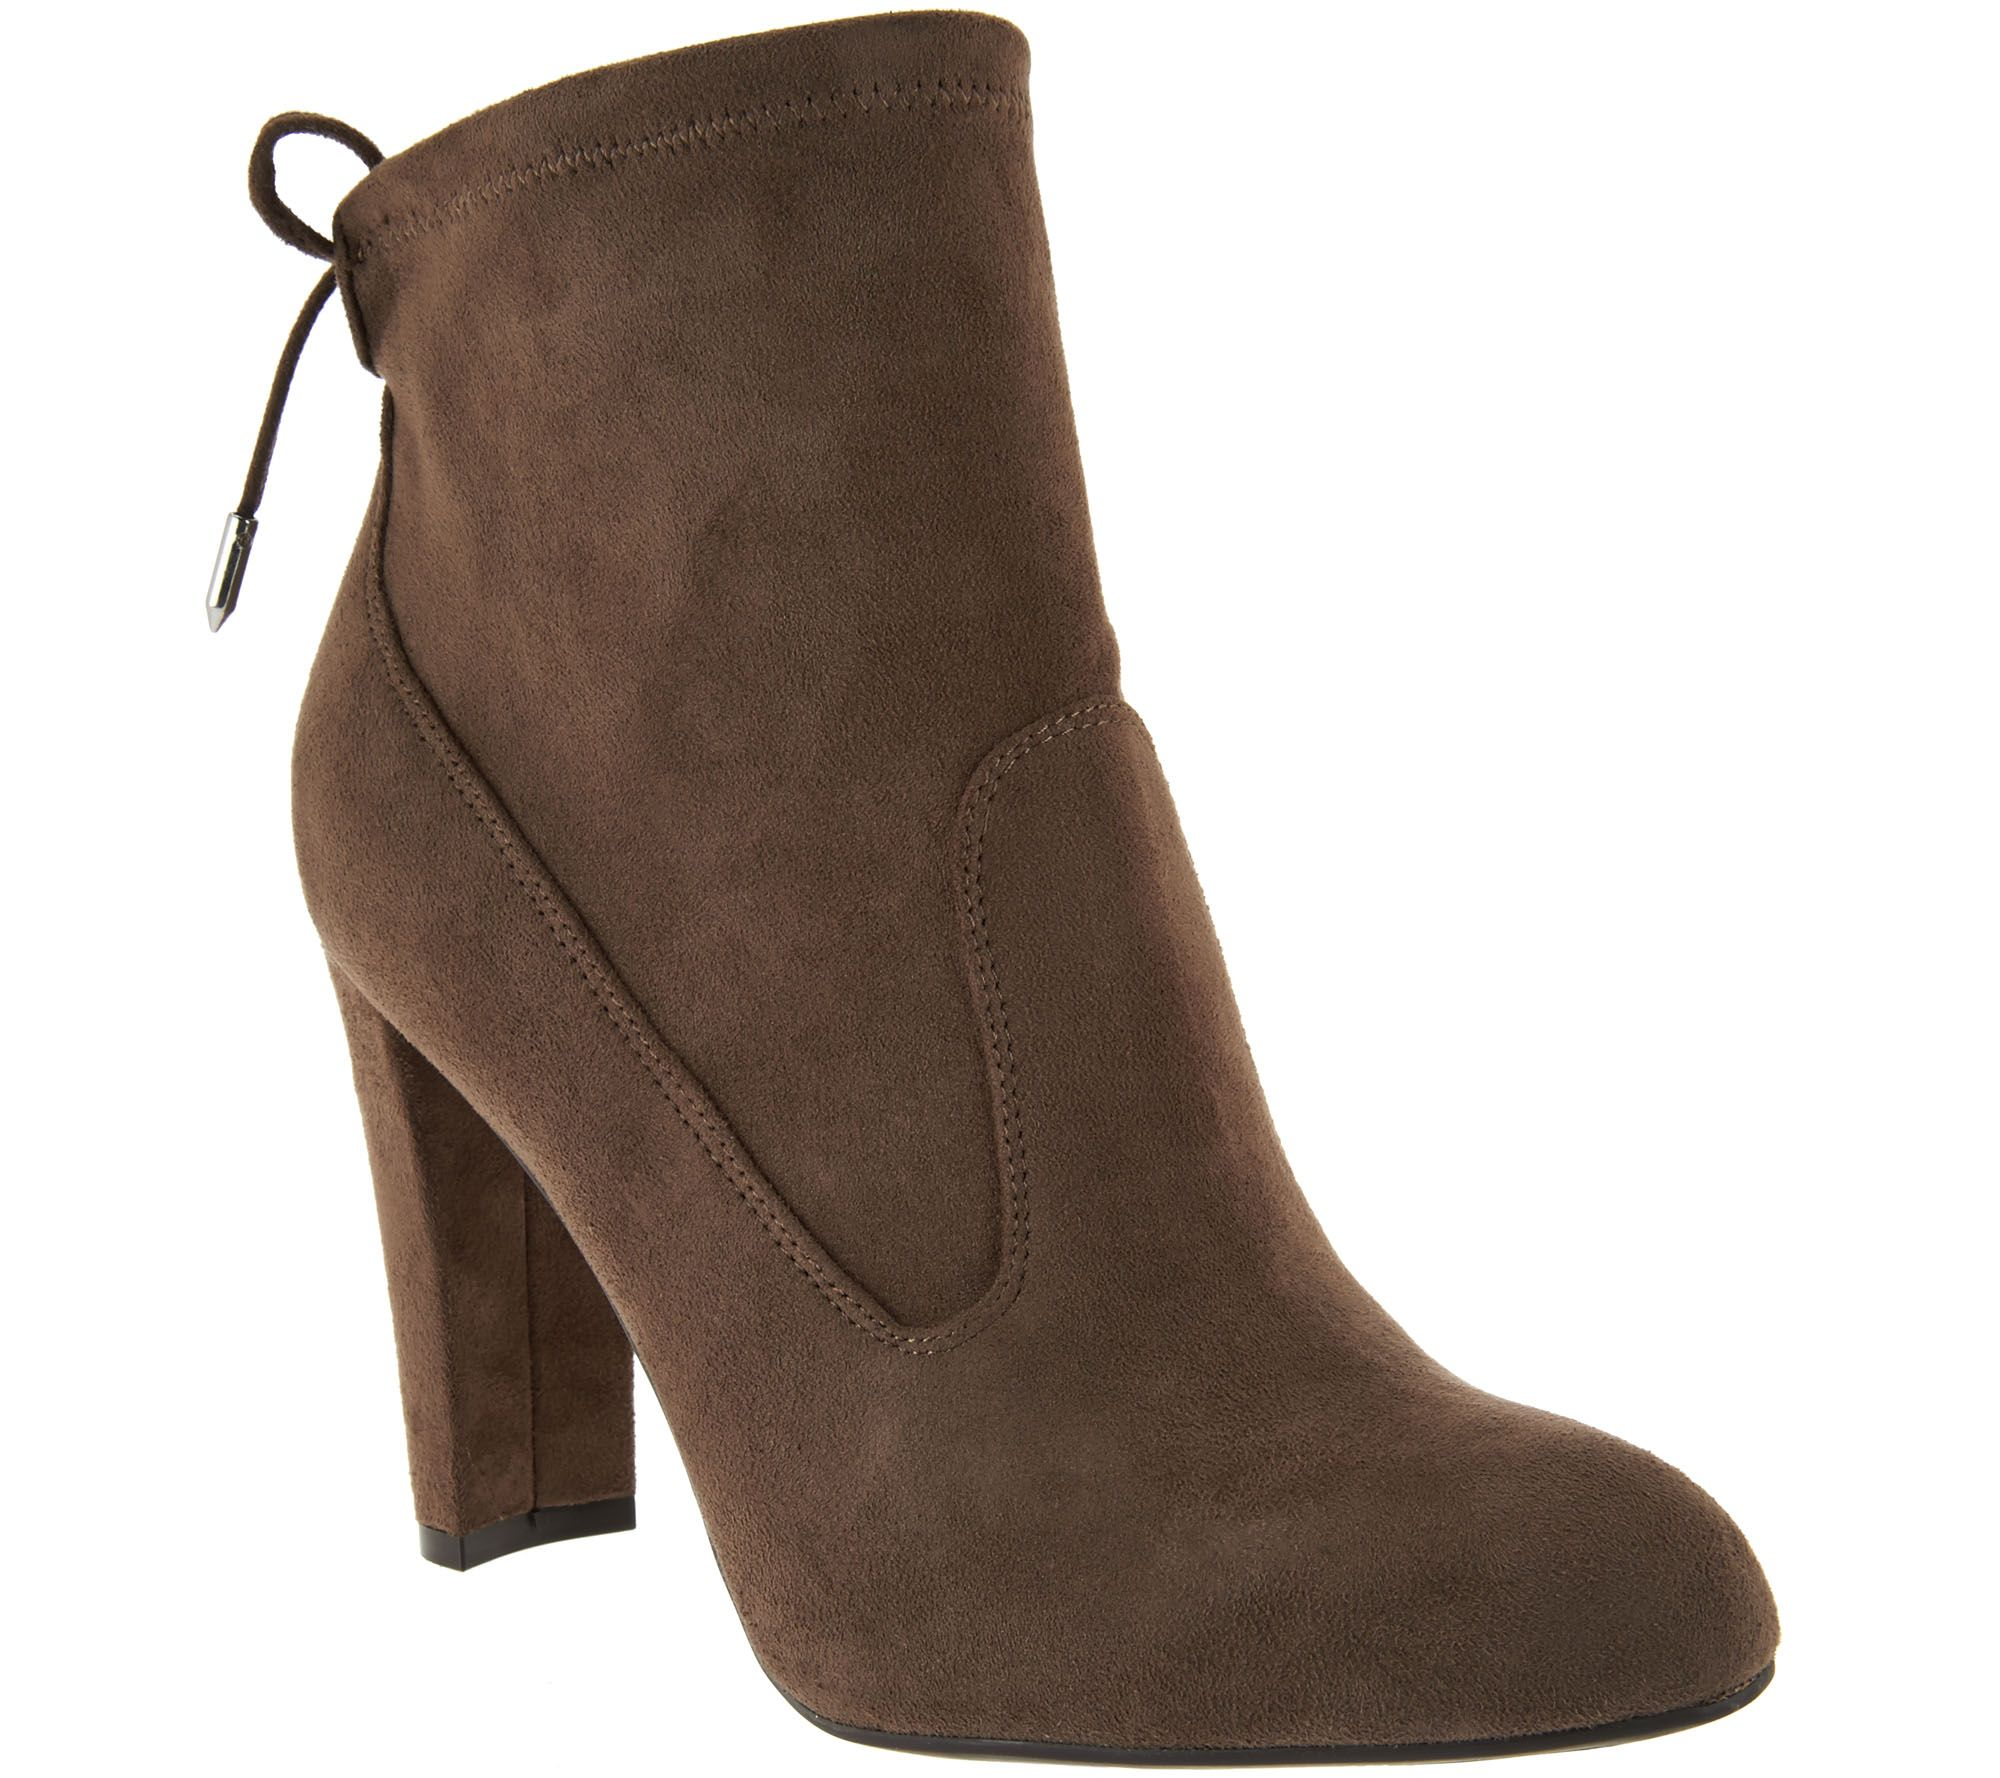 898eb615bdf Marc Fisher Faux-Suede Ankle Boots with Tie Back - Justice - Page 1 — QVC .com